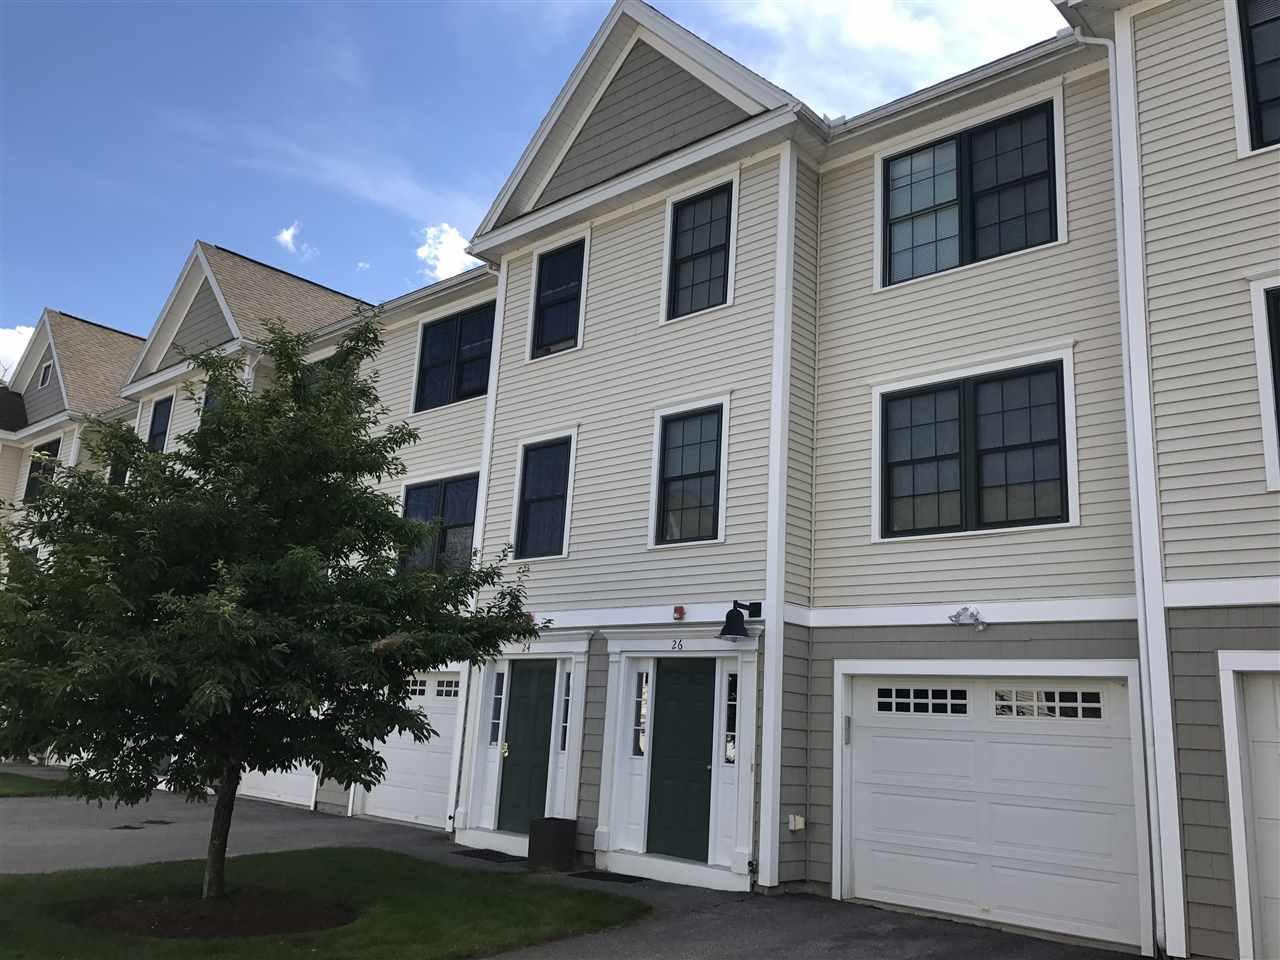 26 Village Dr Meredith Nh Mls 4650026 Better Homes And Gardens Real Estate